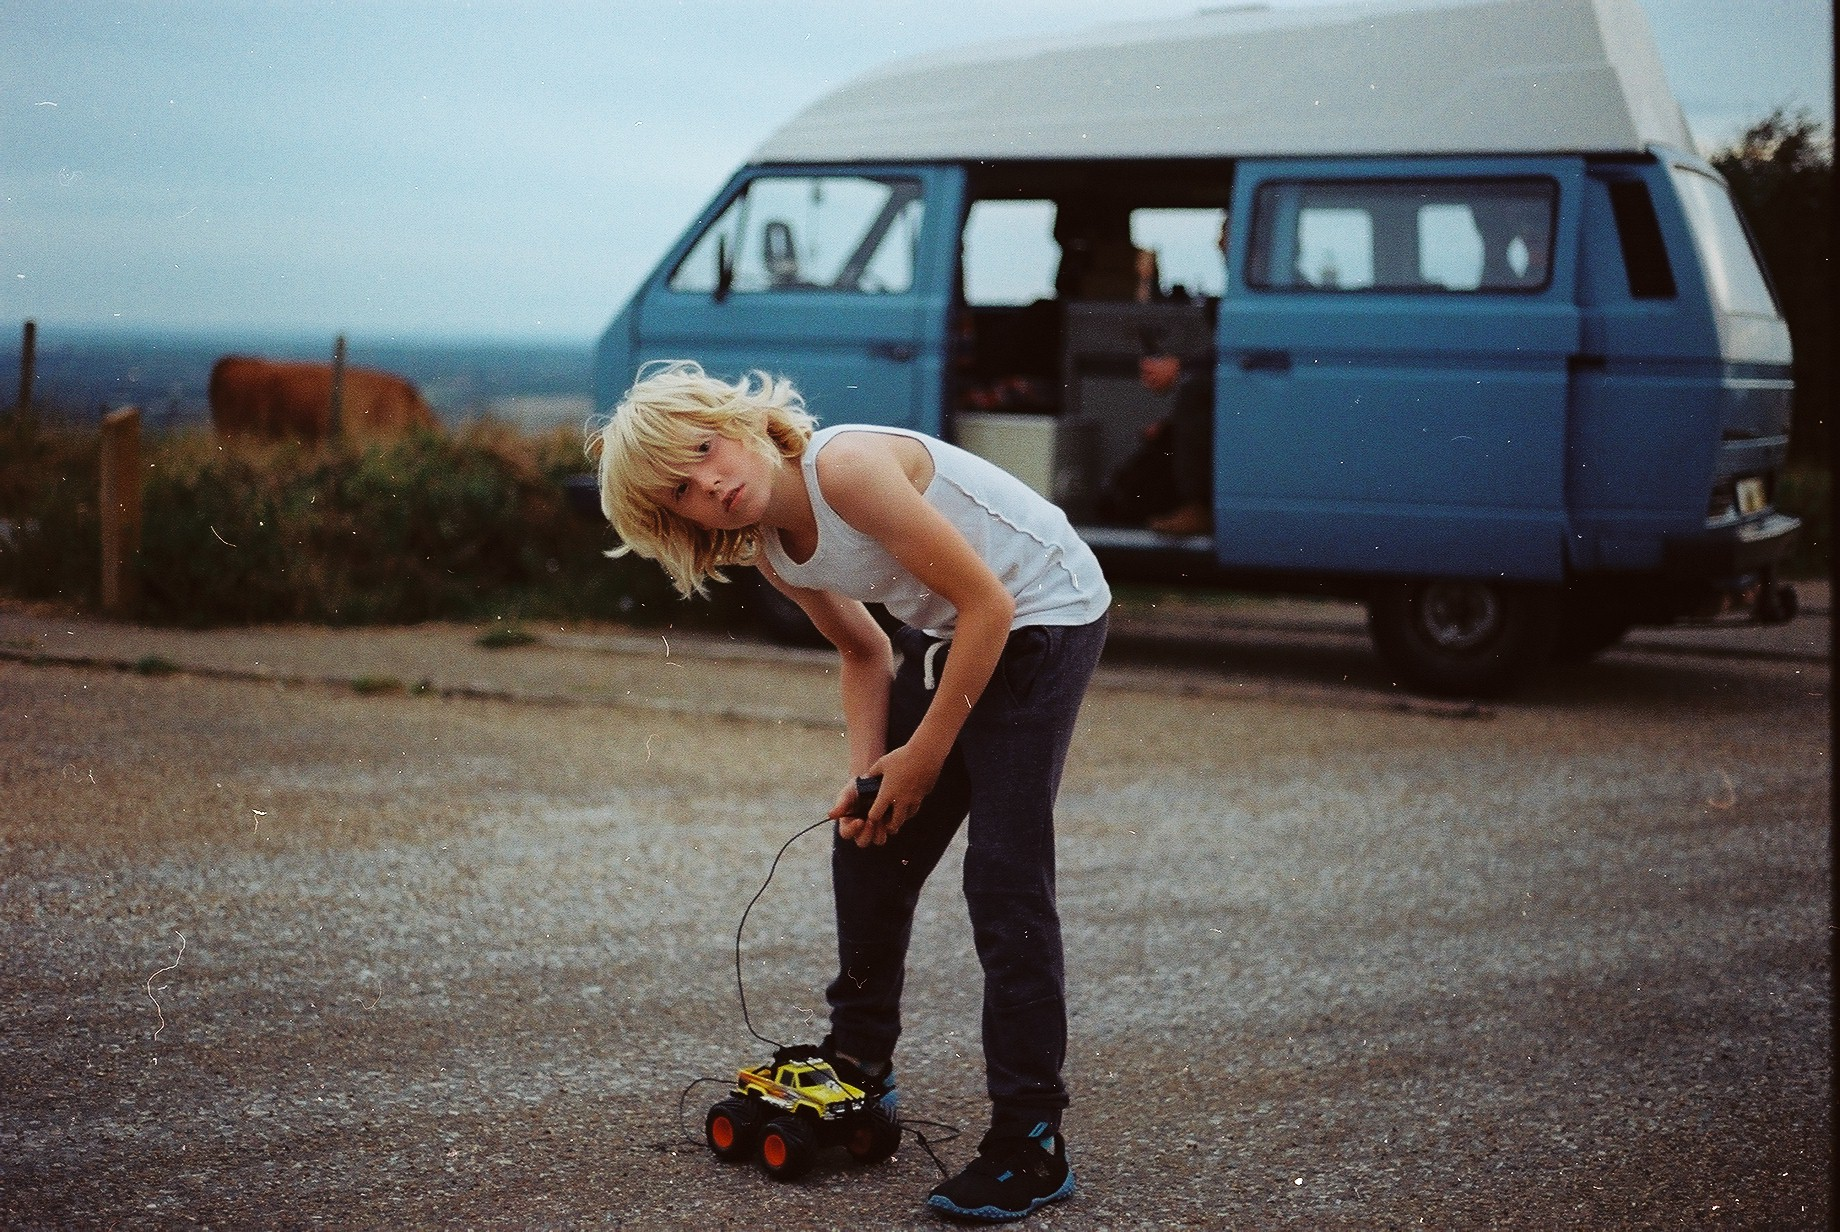 syncro, vw t25, van life, vanlife, #vanlife, syncrolife, travel, travel blog, blogger, exploration, sponsored photographer, jack macgowan, bicycle touring apocalypse, explorer, cycling, bikepacking, adventure cycling, leica, leica m6, m6, canon, canon ae1, film photography blog